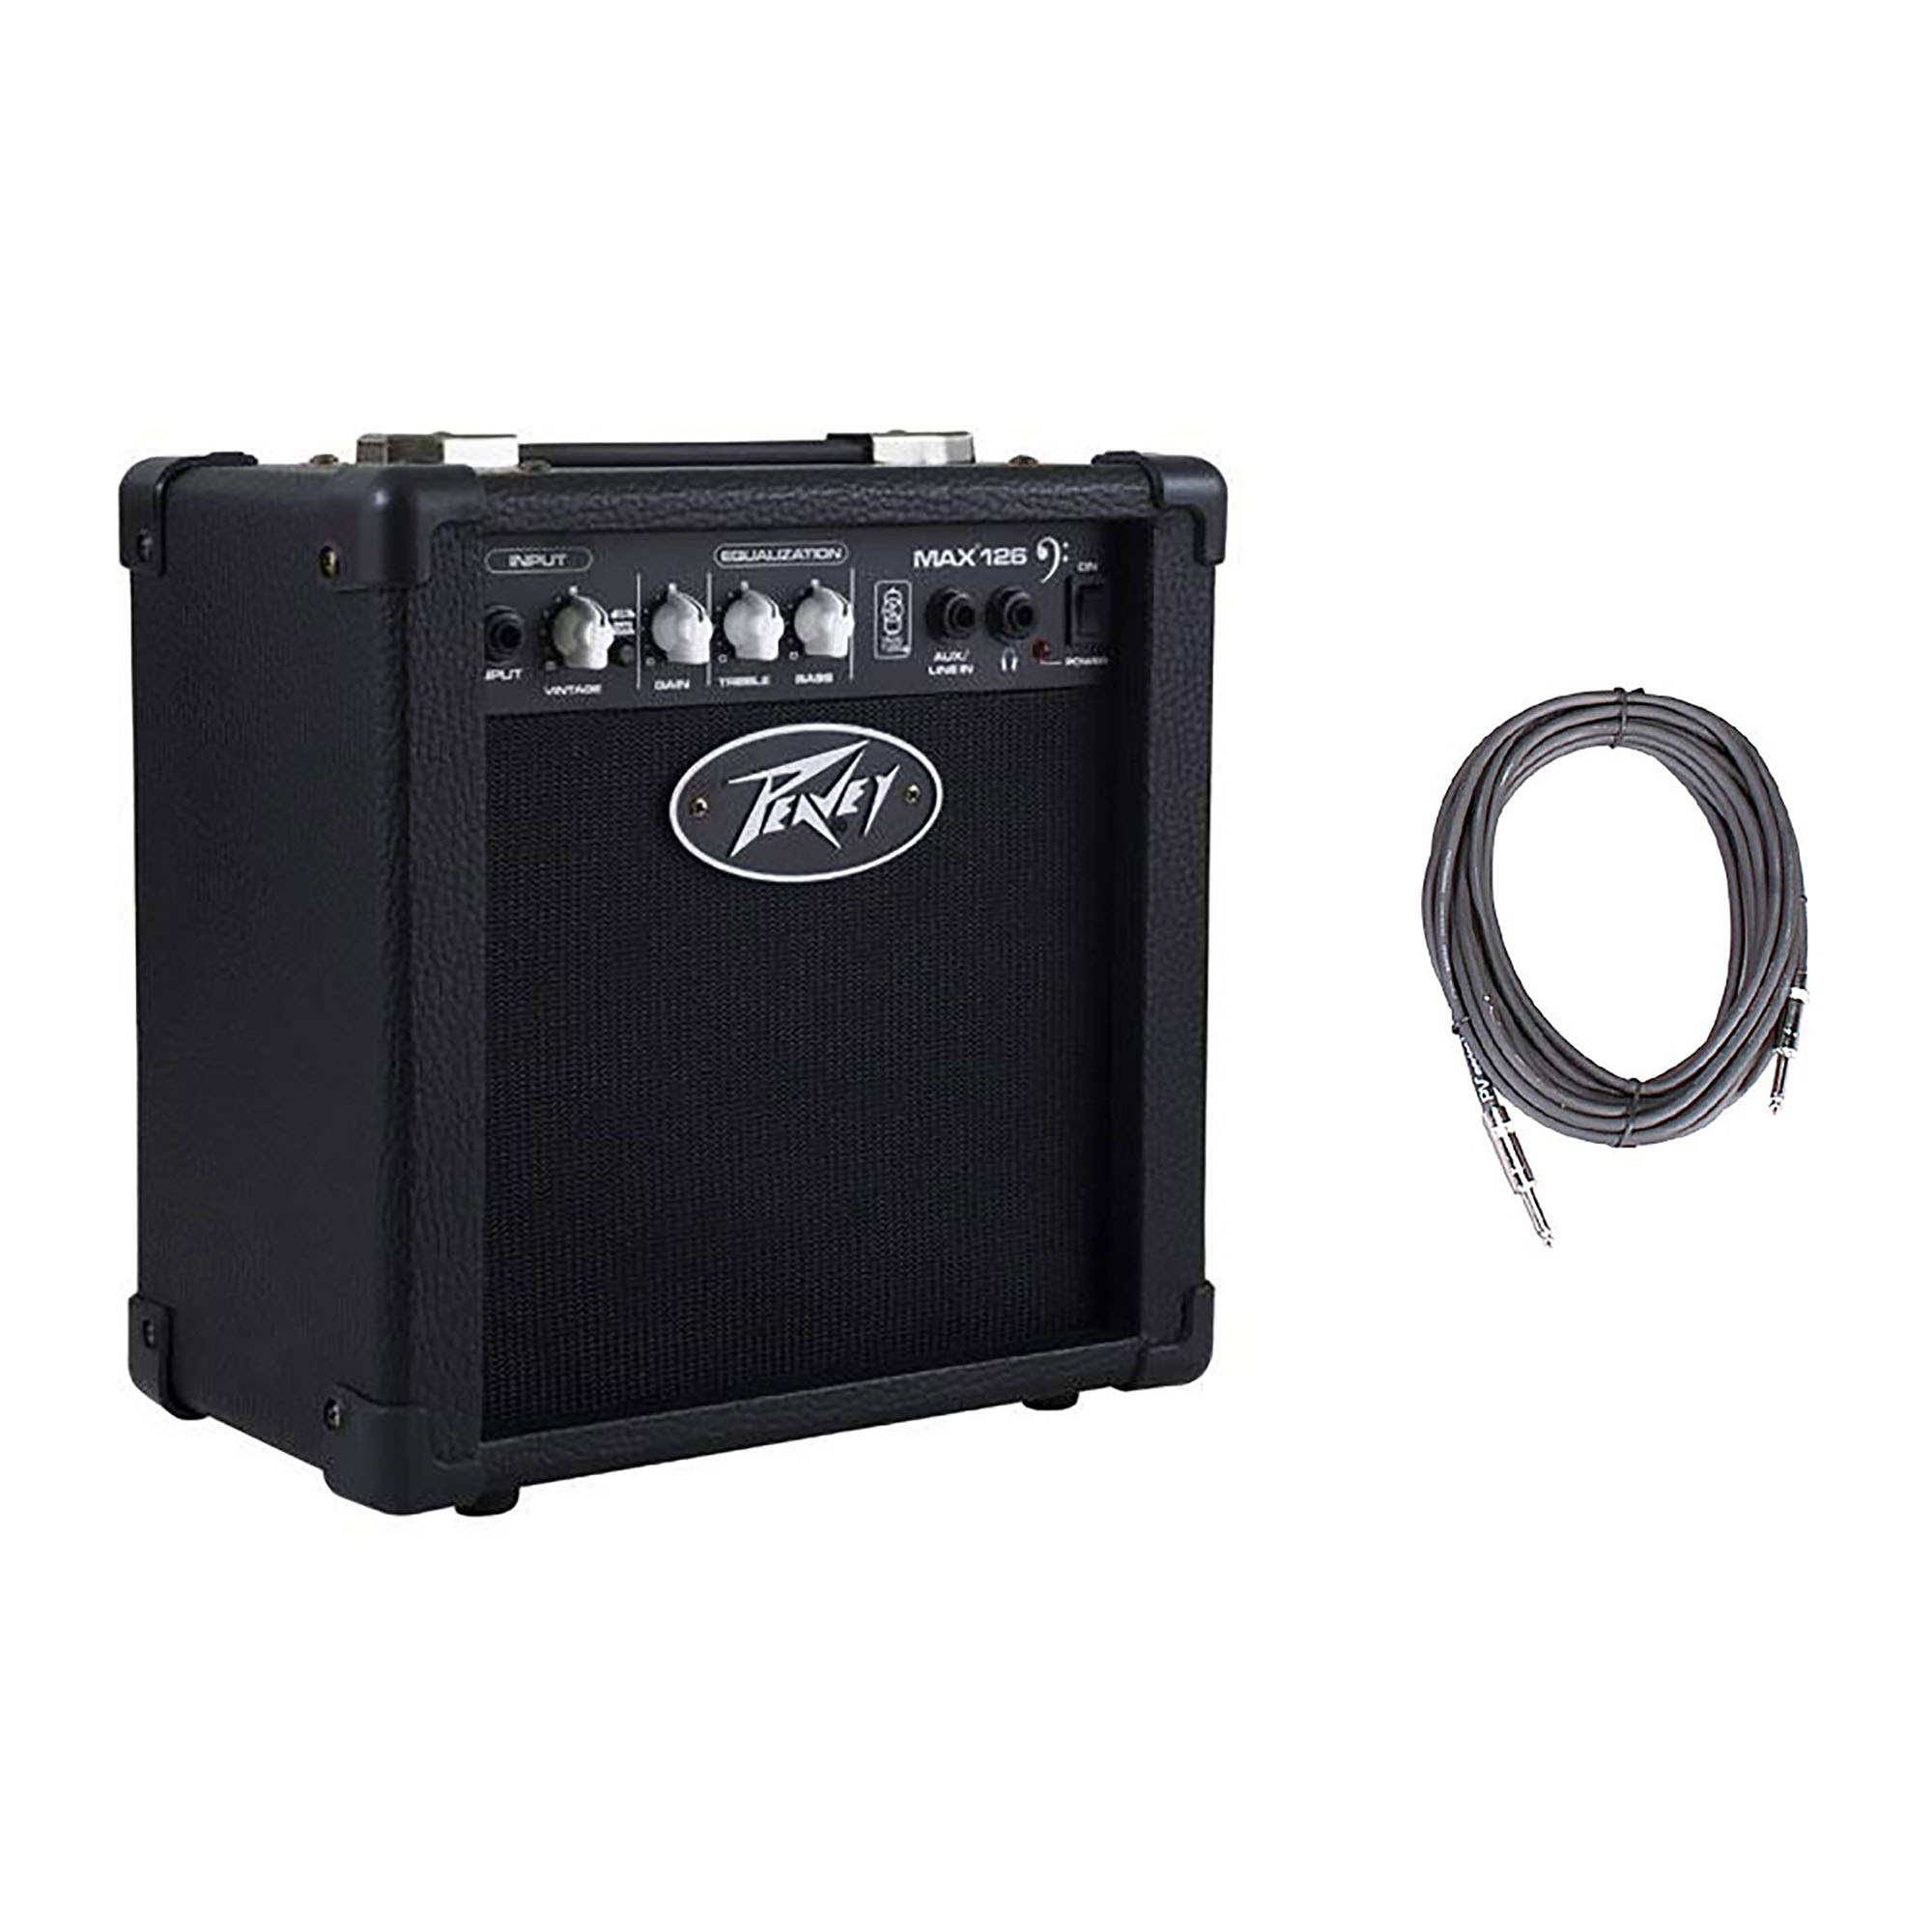 """Peavey Max 126 6.5"""" Compact Vented 10W Bass Guitar Combo Amp + 10' Cable"""